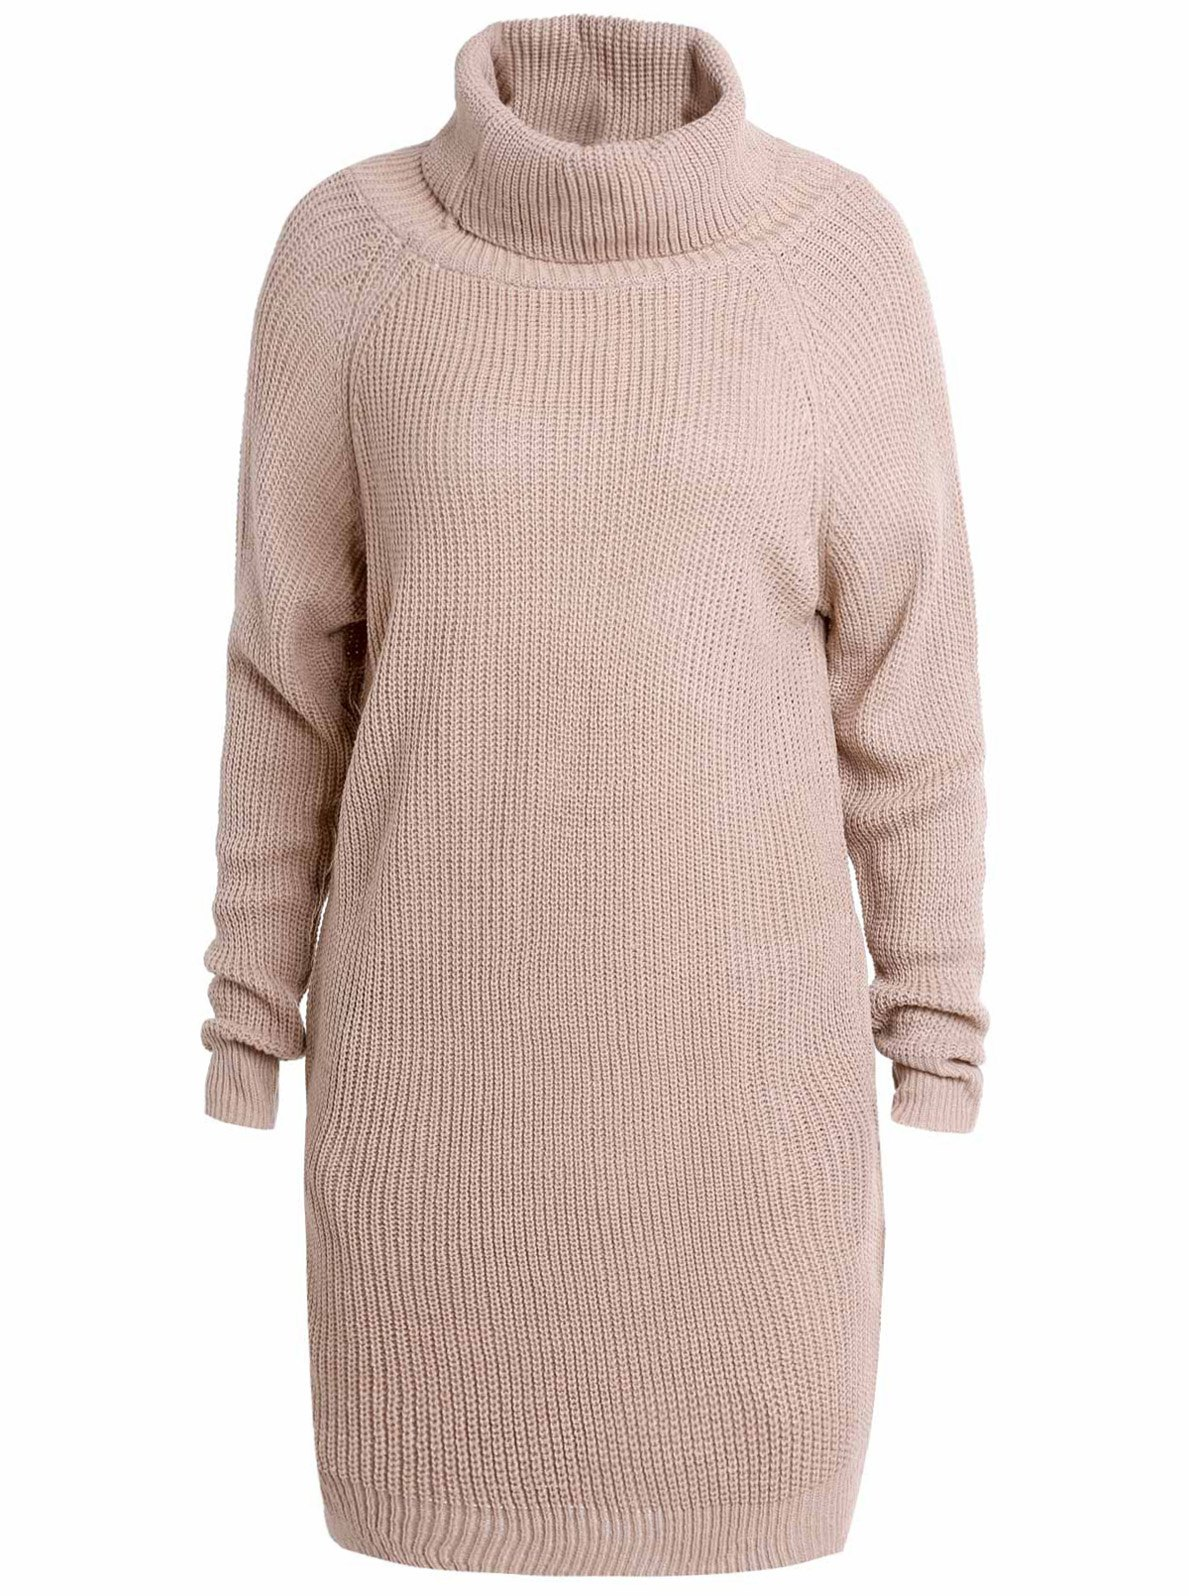 Stylish Long Sleeve Turtleneck Loose-Fitting Pure Color Womens Long SweaterWomen<br><br><br>Size: XL<br>Color: LIGHT APRICOT